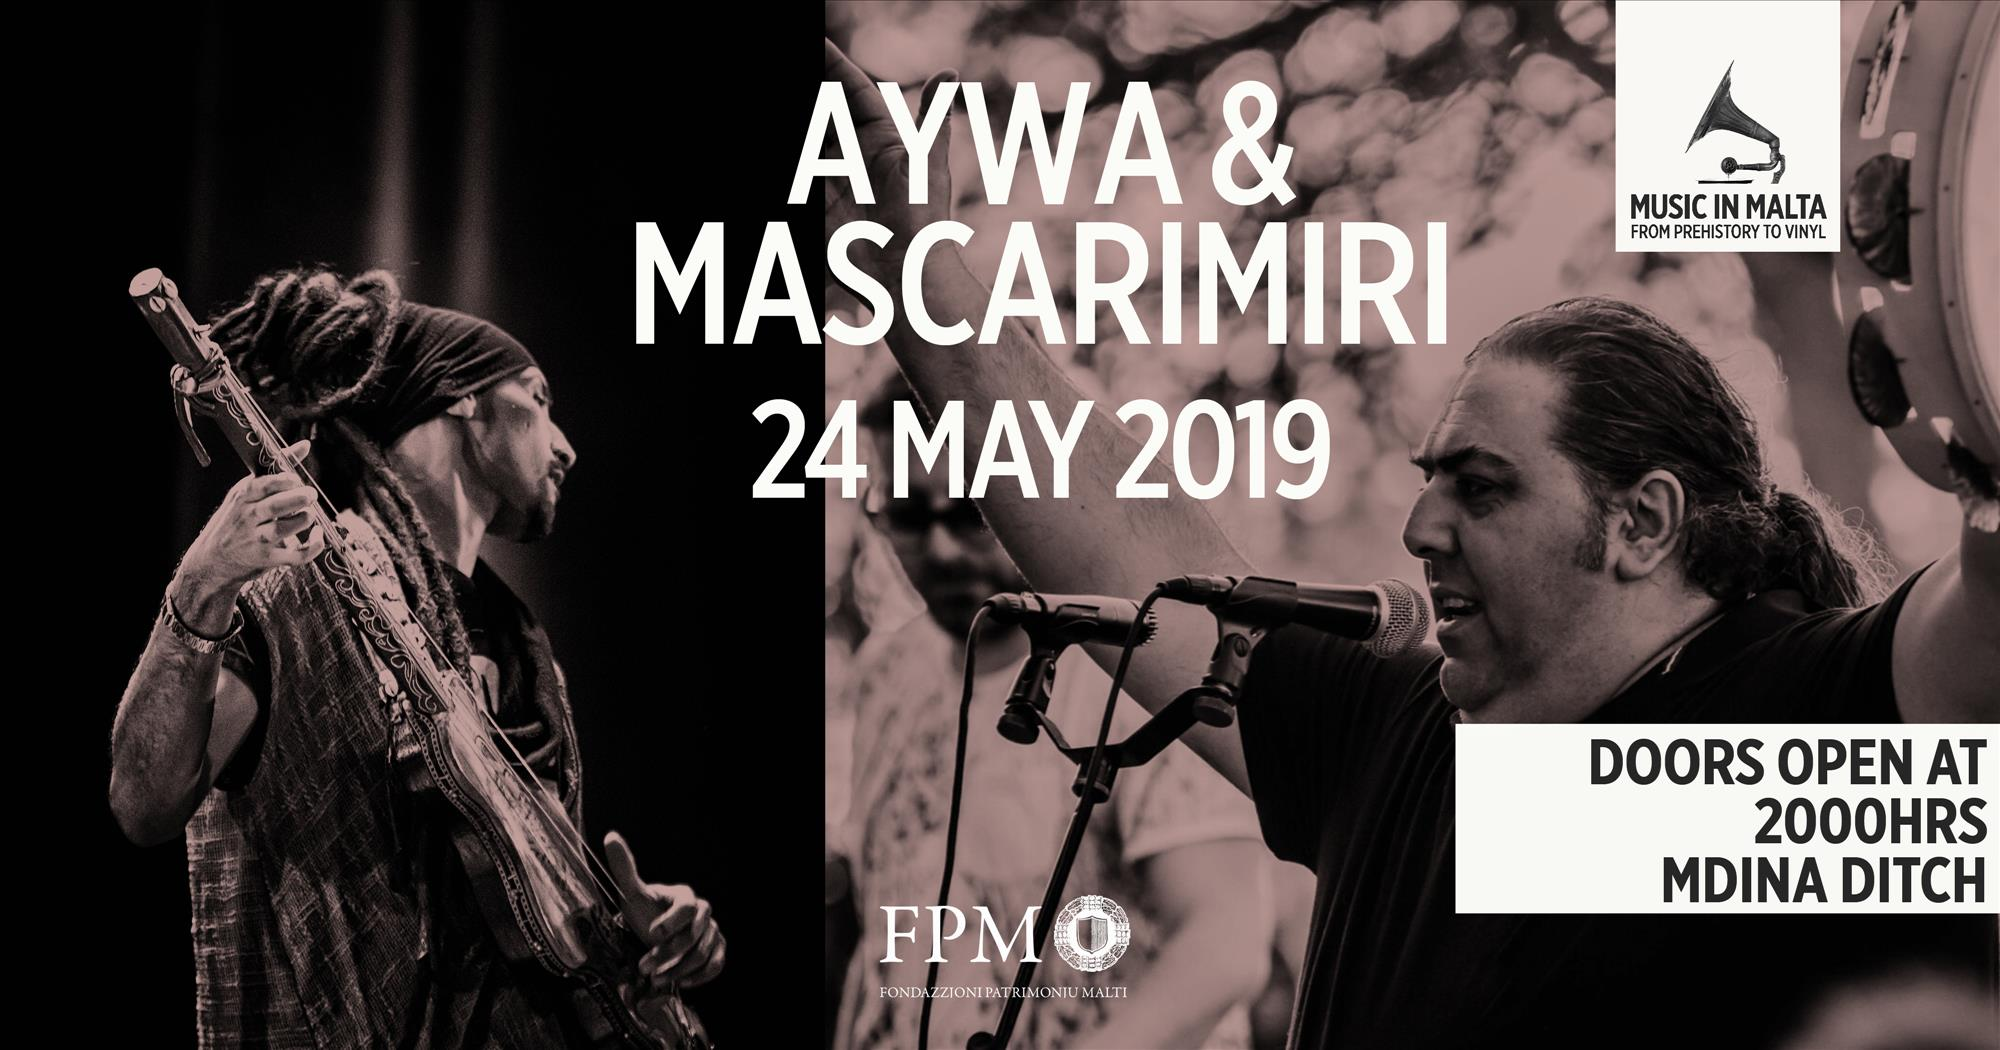 AYWA & MASCARIMIRI flyer